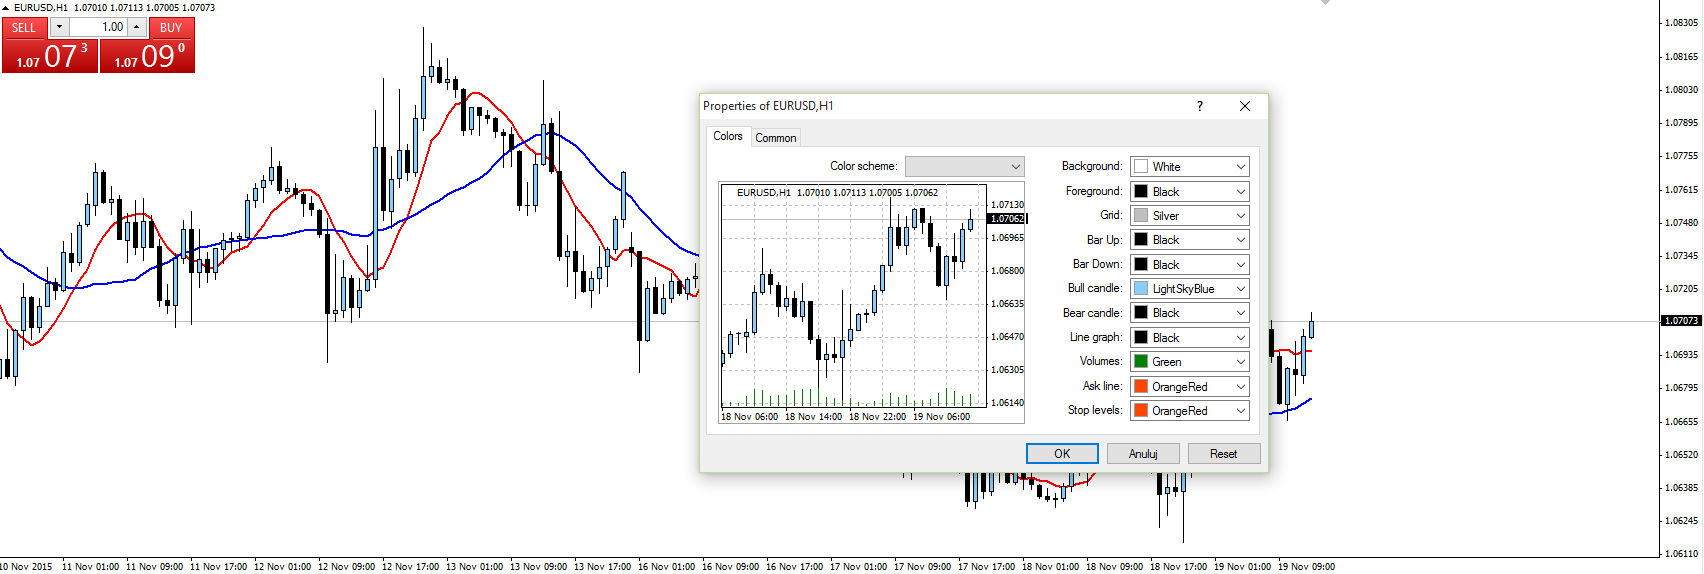 Forex basics tutorial pdf